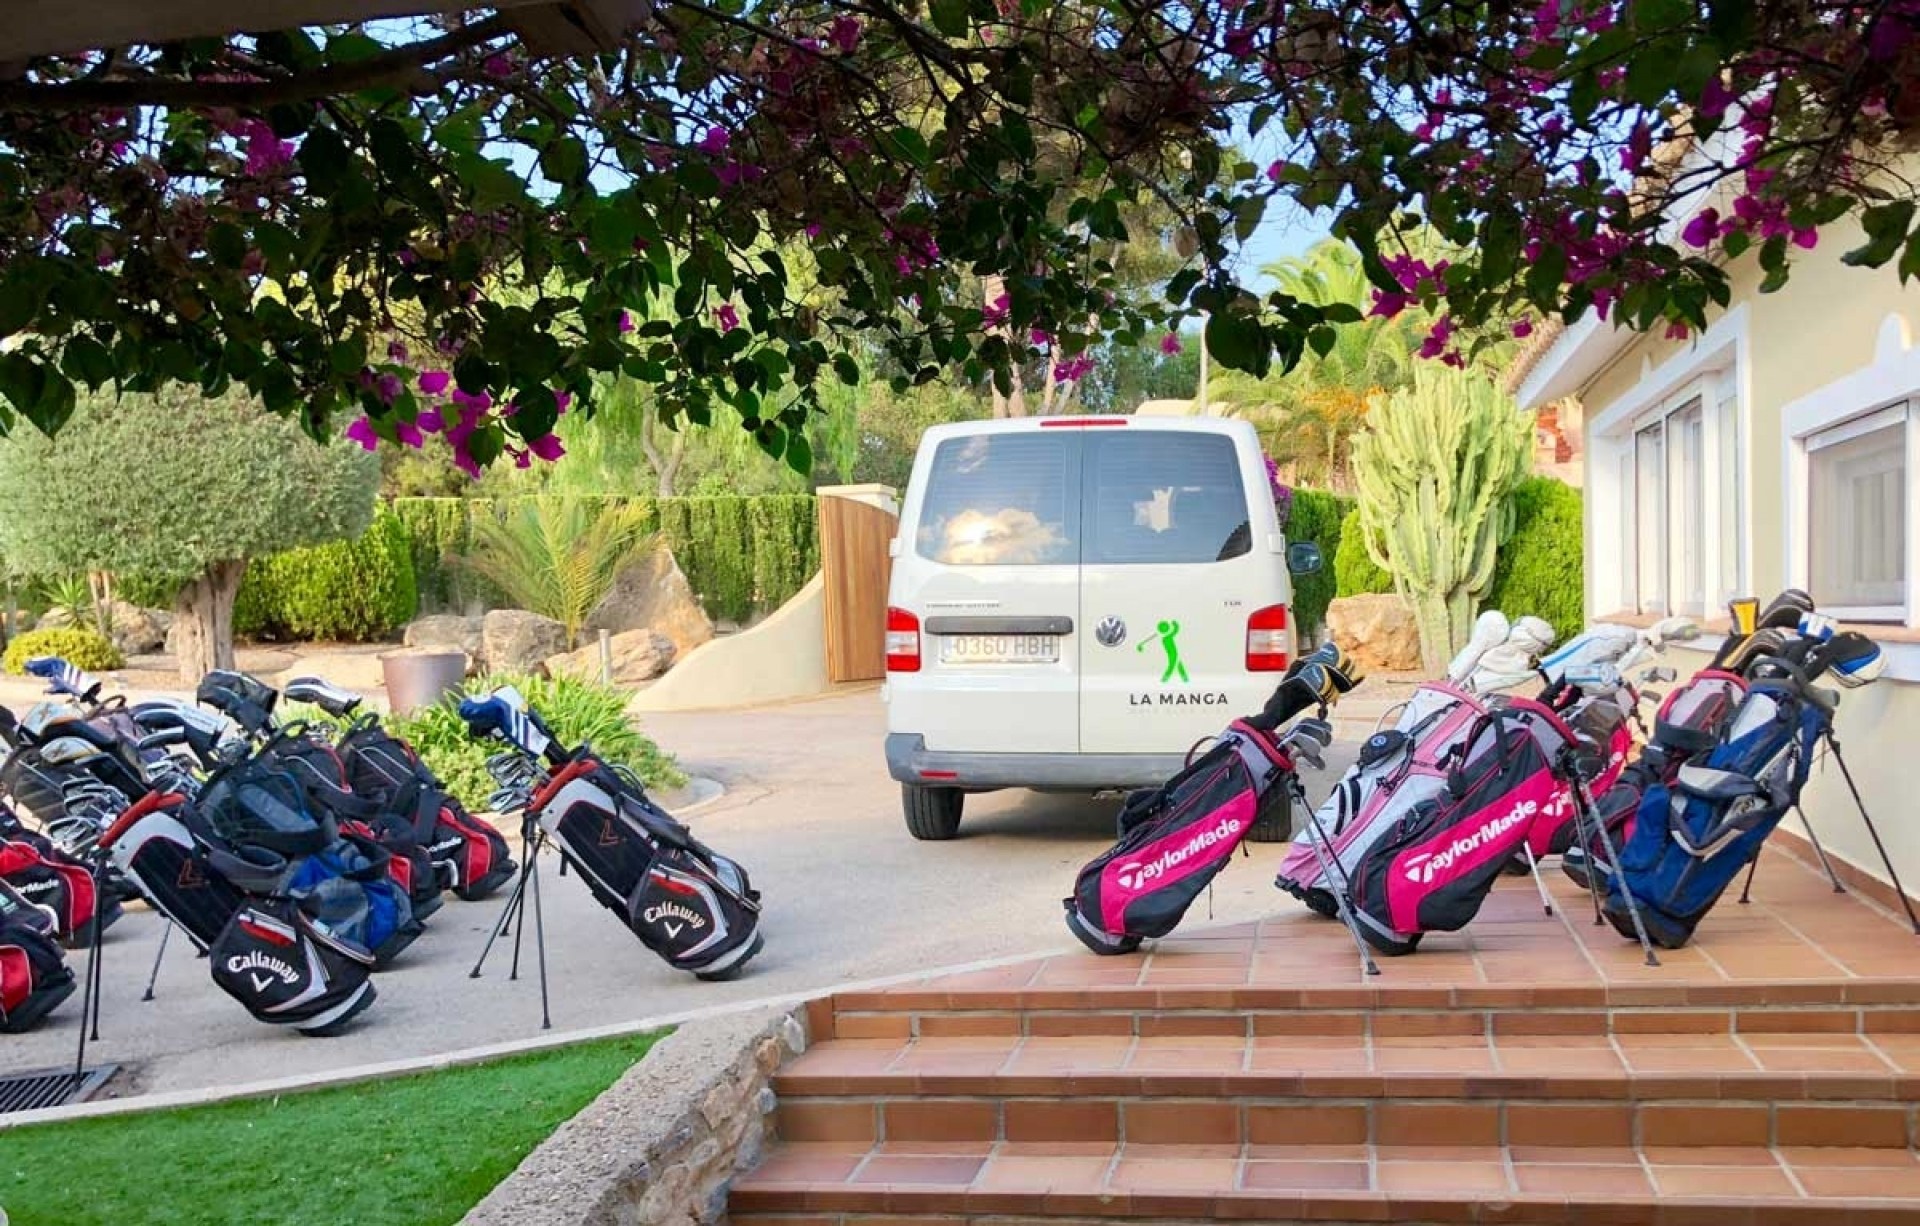 Golf-club-hire-spain-benidorm-lamanga-murcia-alicante